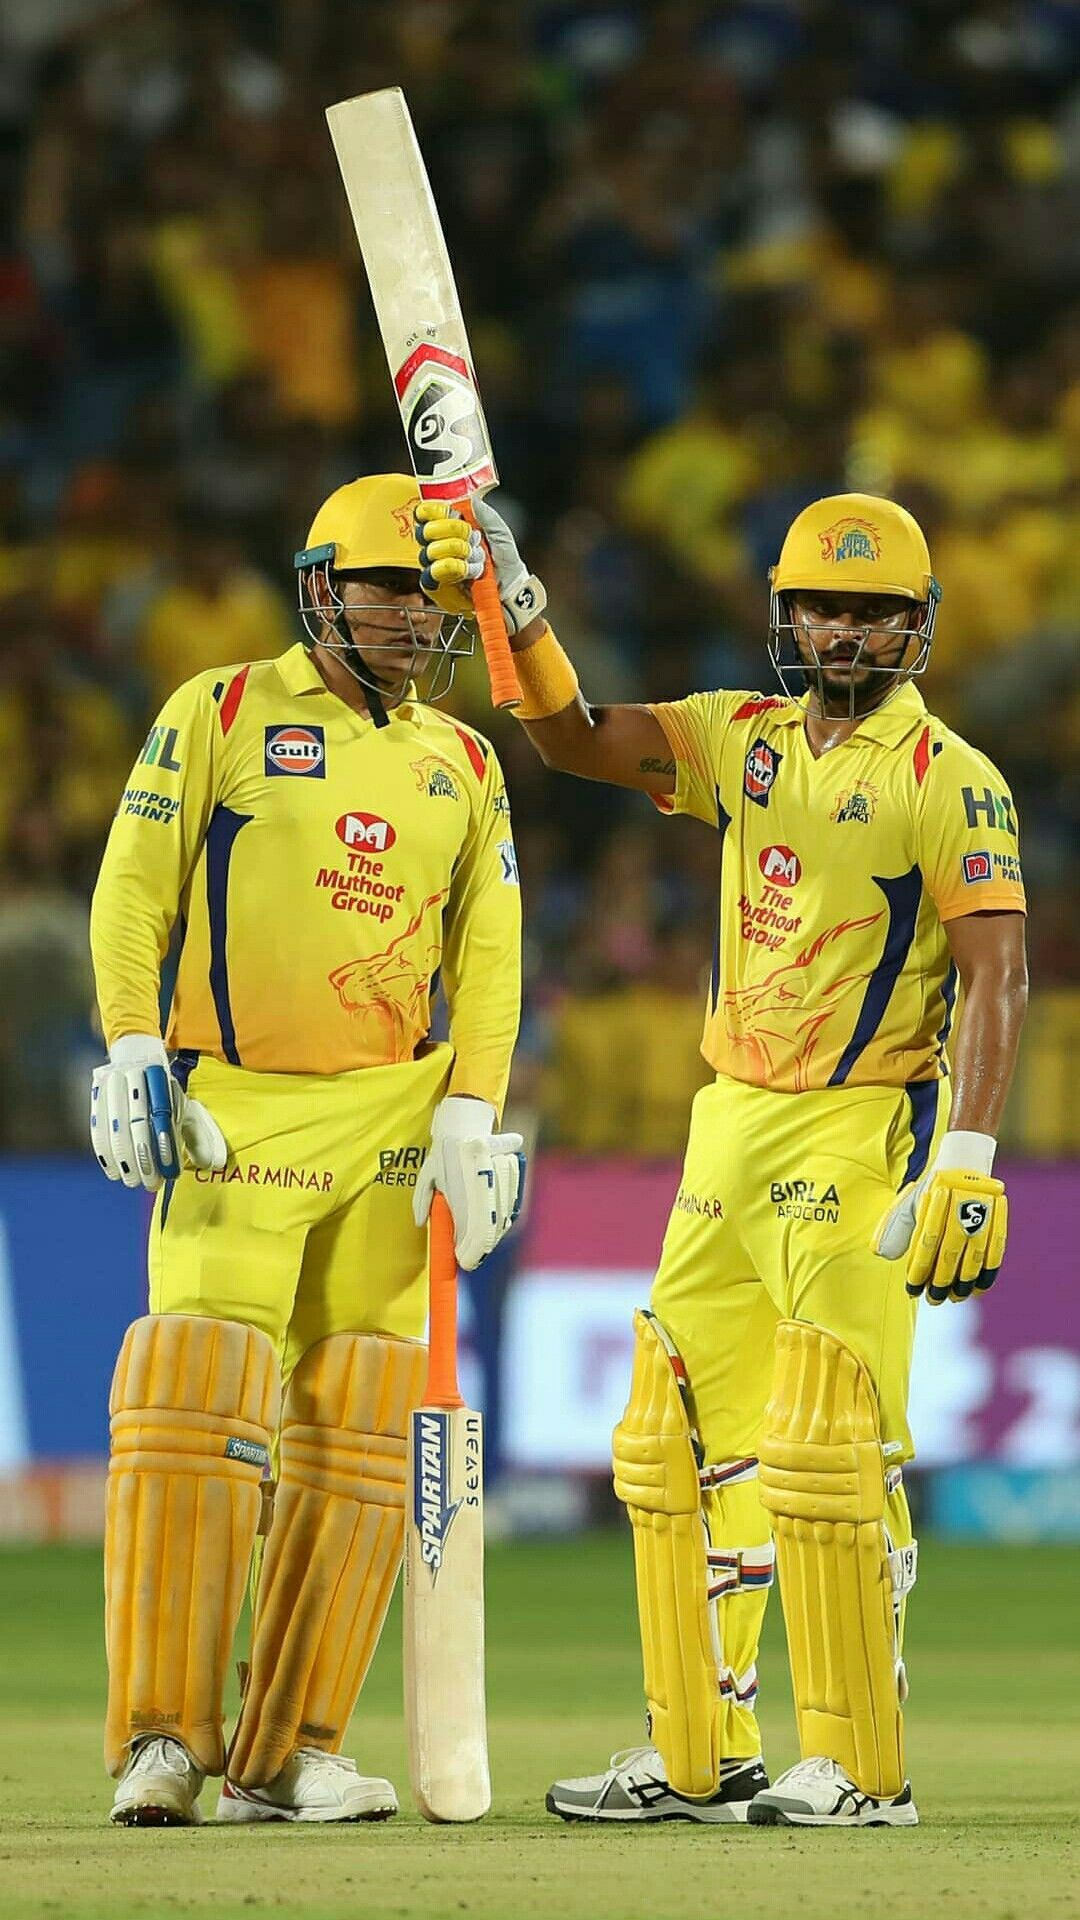 Csk Wallpaper Hd Resolution Hupages Download Iphone Wallpapers Ms Dhoni Photos Chennai Super Kings Ms Dhoni Wallpapers